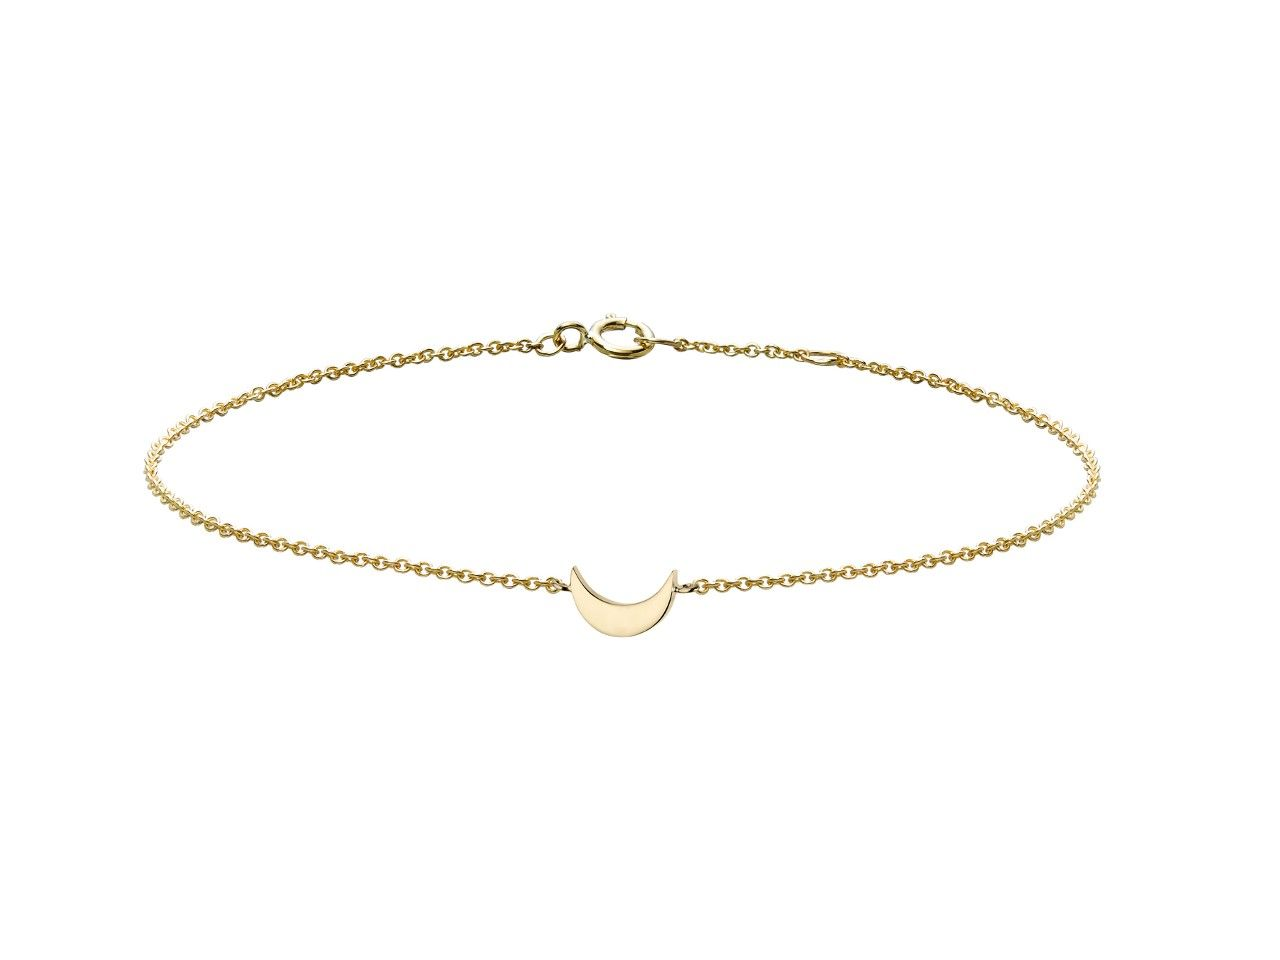 bracelet elegant quotalhambraquot collection karat bracelets bangle alhambra cleef gold arpel van lovely of amp bracel bangles